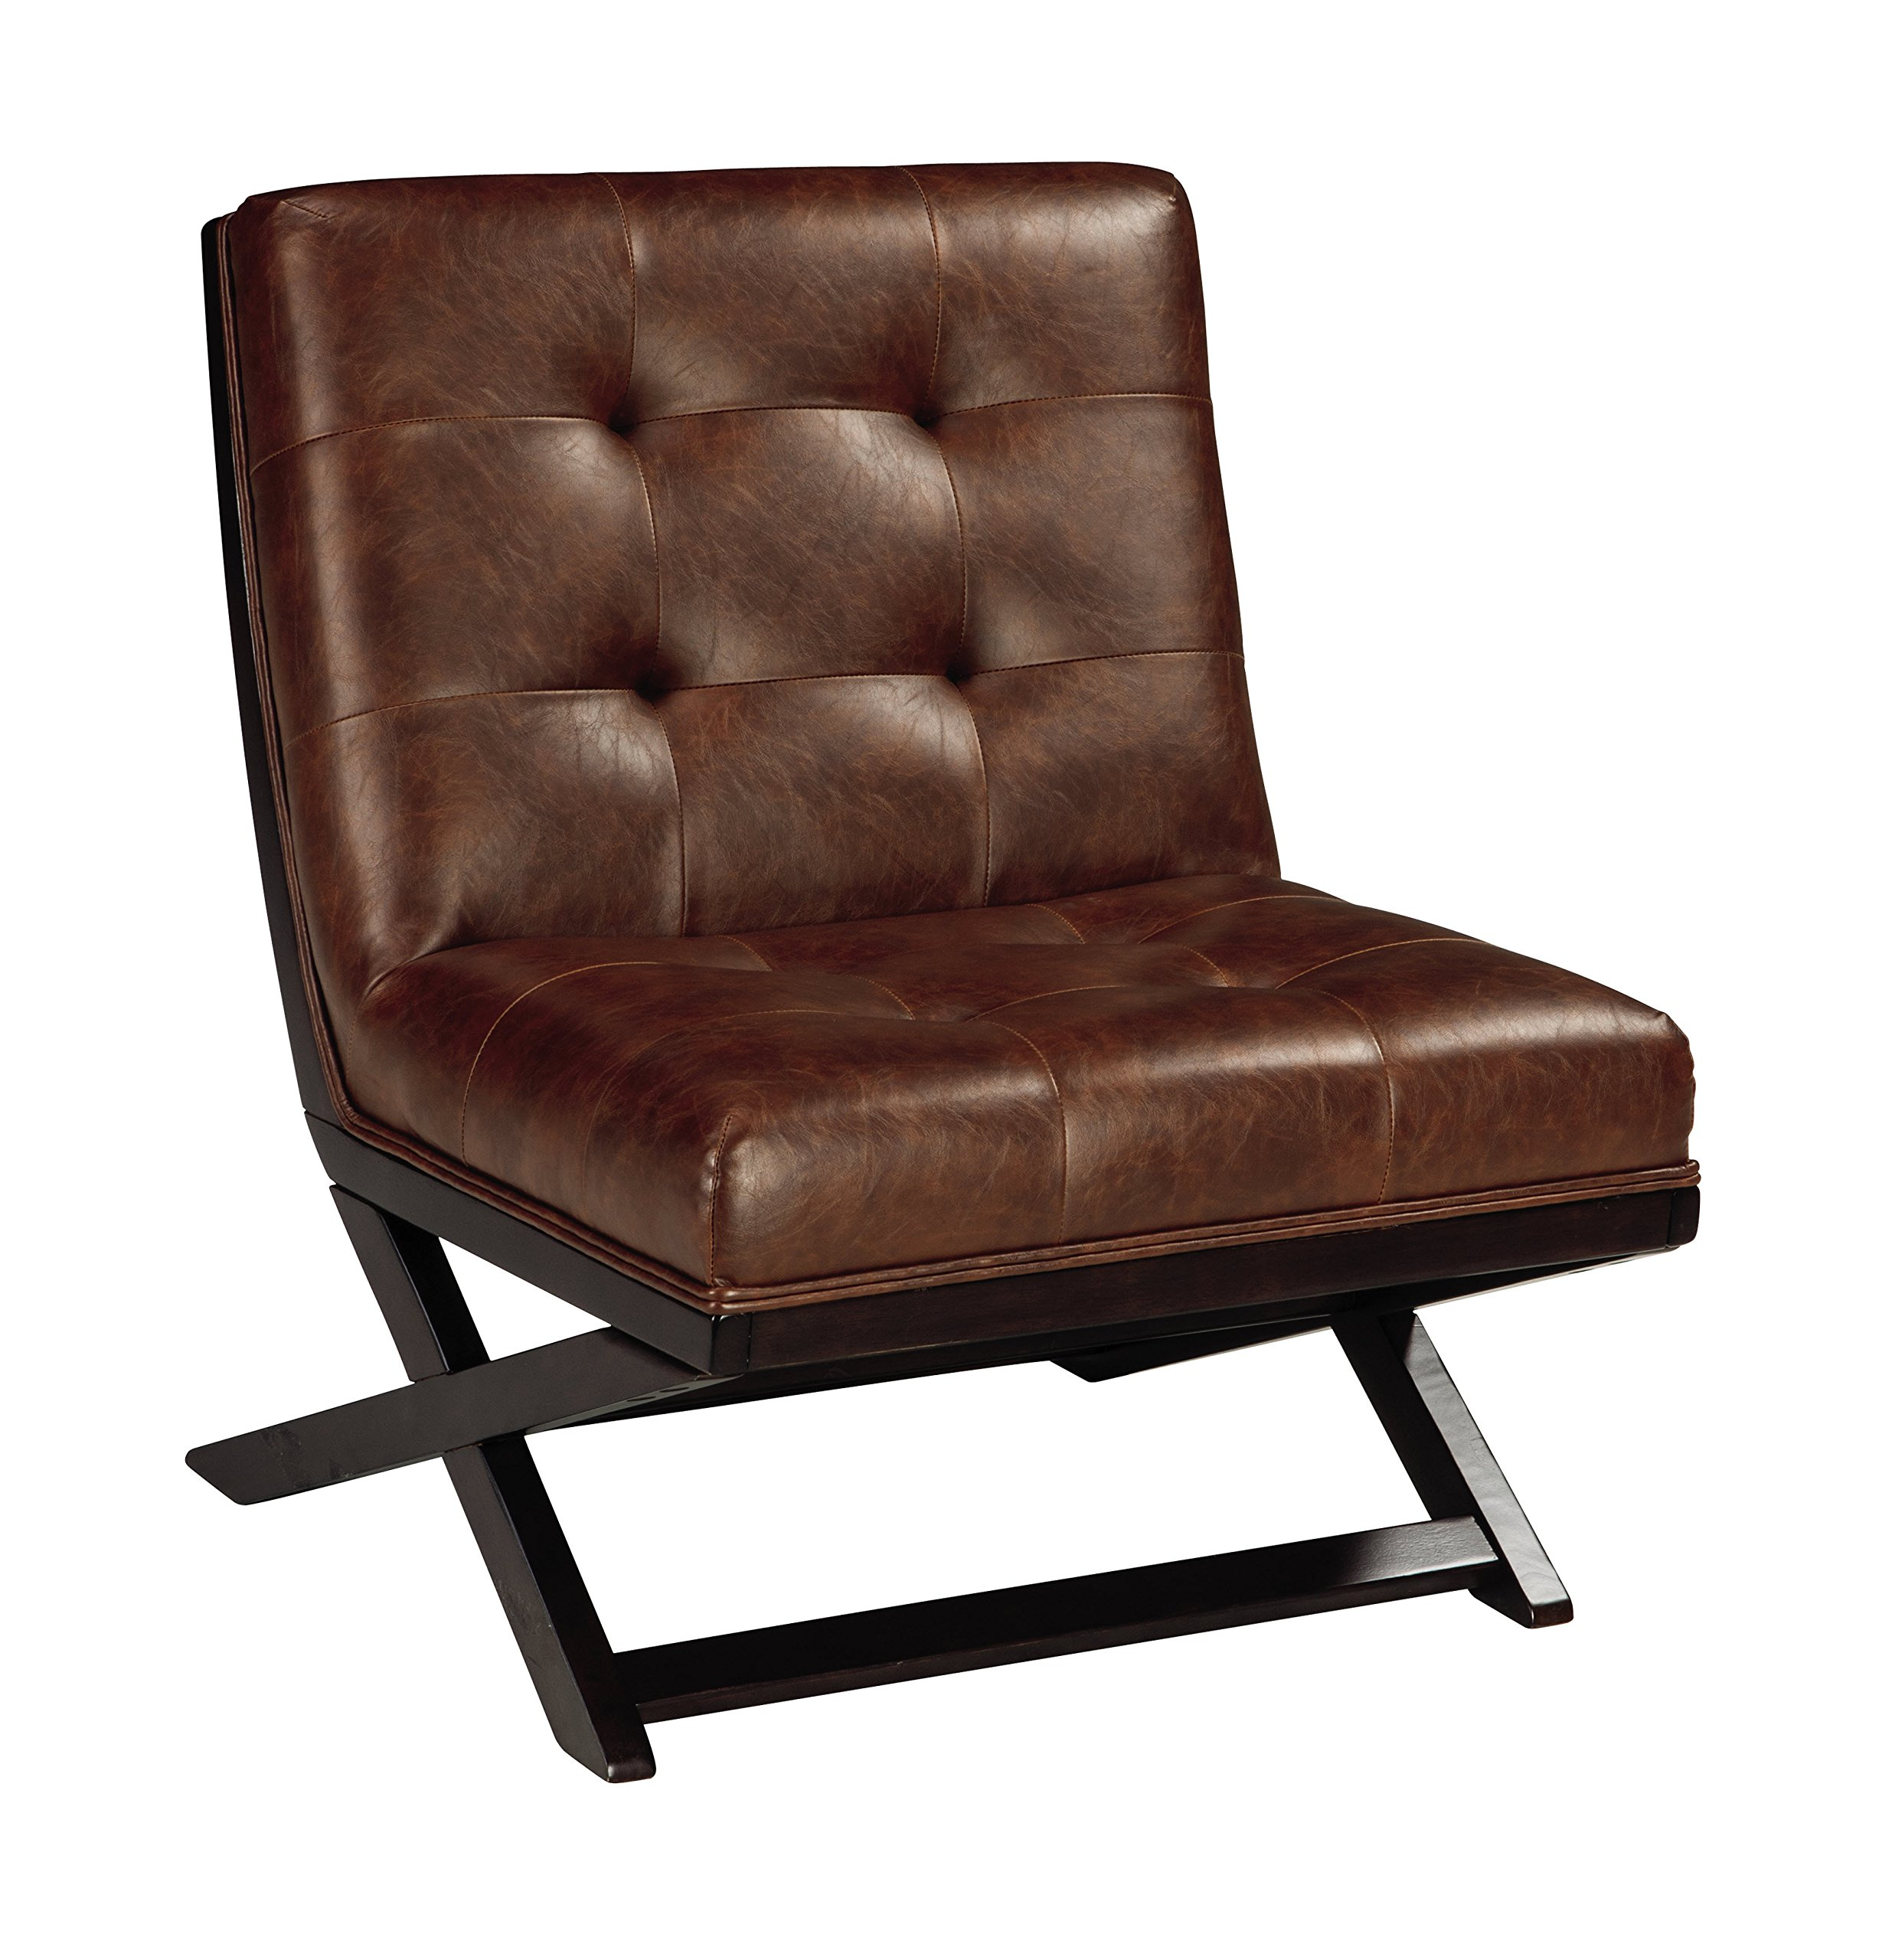 "Signature Design by Ashley - Sidewinder Accent Chair - Tufted Faux Leather - Brown - TUFTED ACCENT CHAIR: Sit back and enjoy high style. The faux leather exudes luxury, while the generous size lets you sprawl out. This armless chair is sure to make a bold statement HANDSOMELY CRAFTED: Sit back on high-resiliency foam cushions wrapped in faux leather upholstery. Designed with an exposed frame in a faux wood finish SCISSOR BASE: Inspired by the Barcelona chair, the ""X"" base and button tufting are chic details that set it apart from the rest - living-room-furniture, living-room, accent-chairs - 91mOlAGyL6L -"